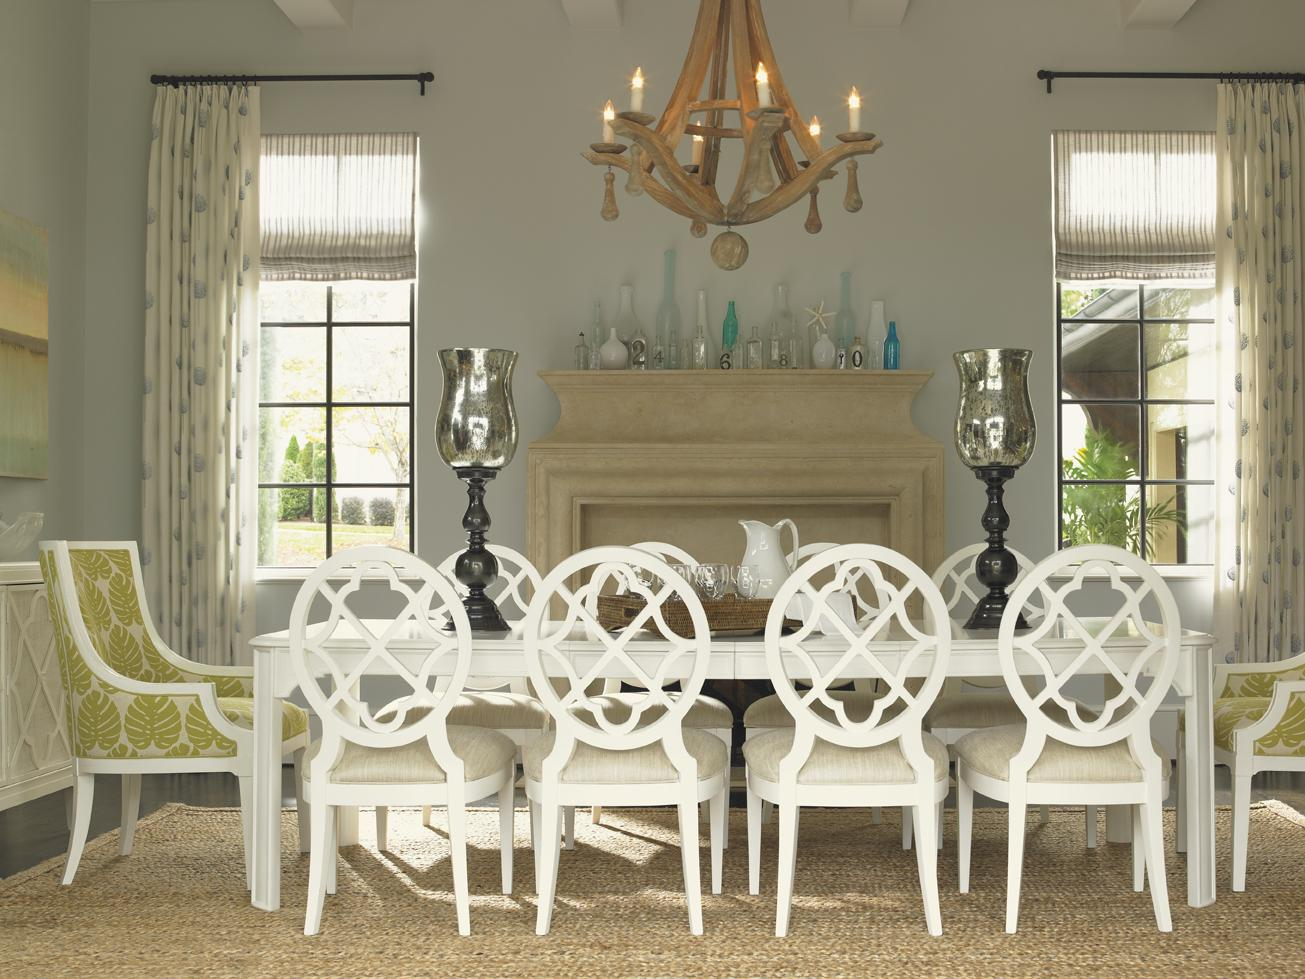 Ivory Key 11 Piece Table and Chair Set by Tommy Bahama Home at Baer's Furniture